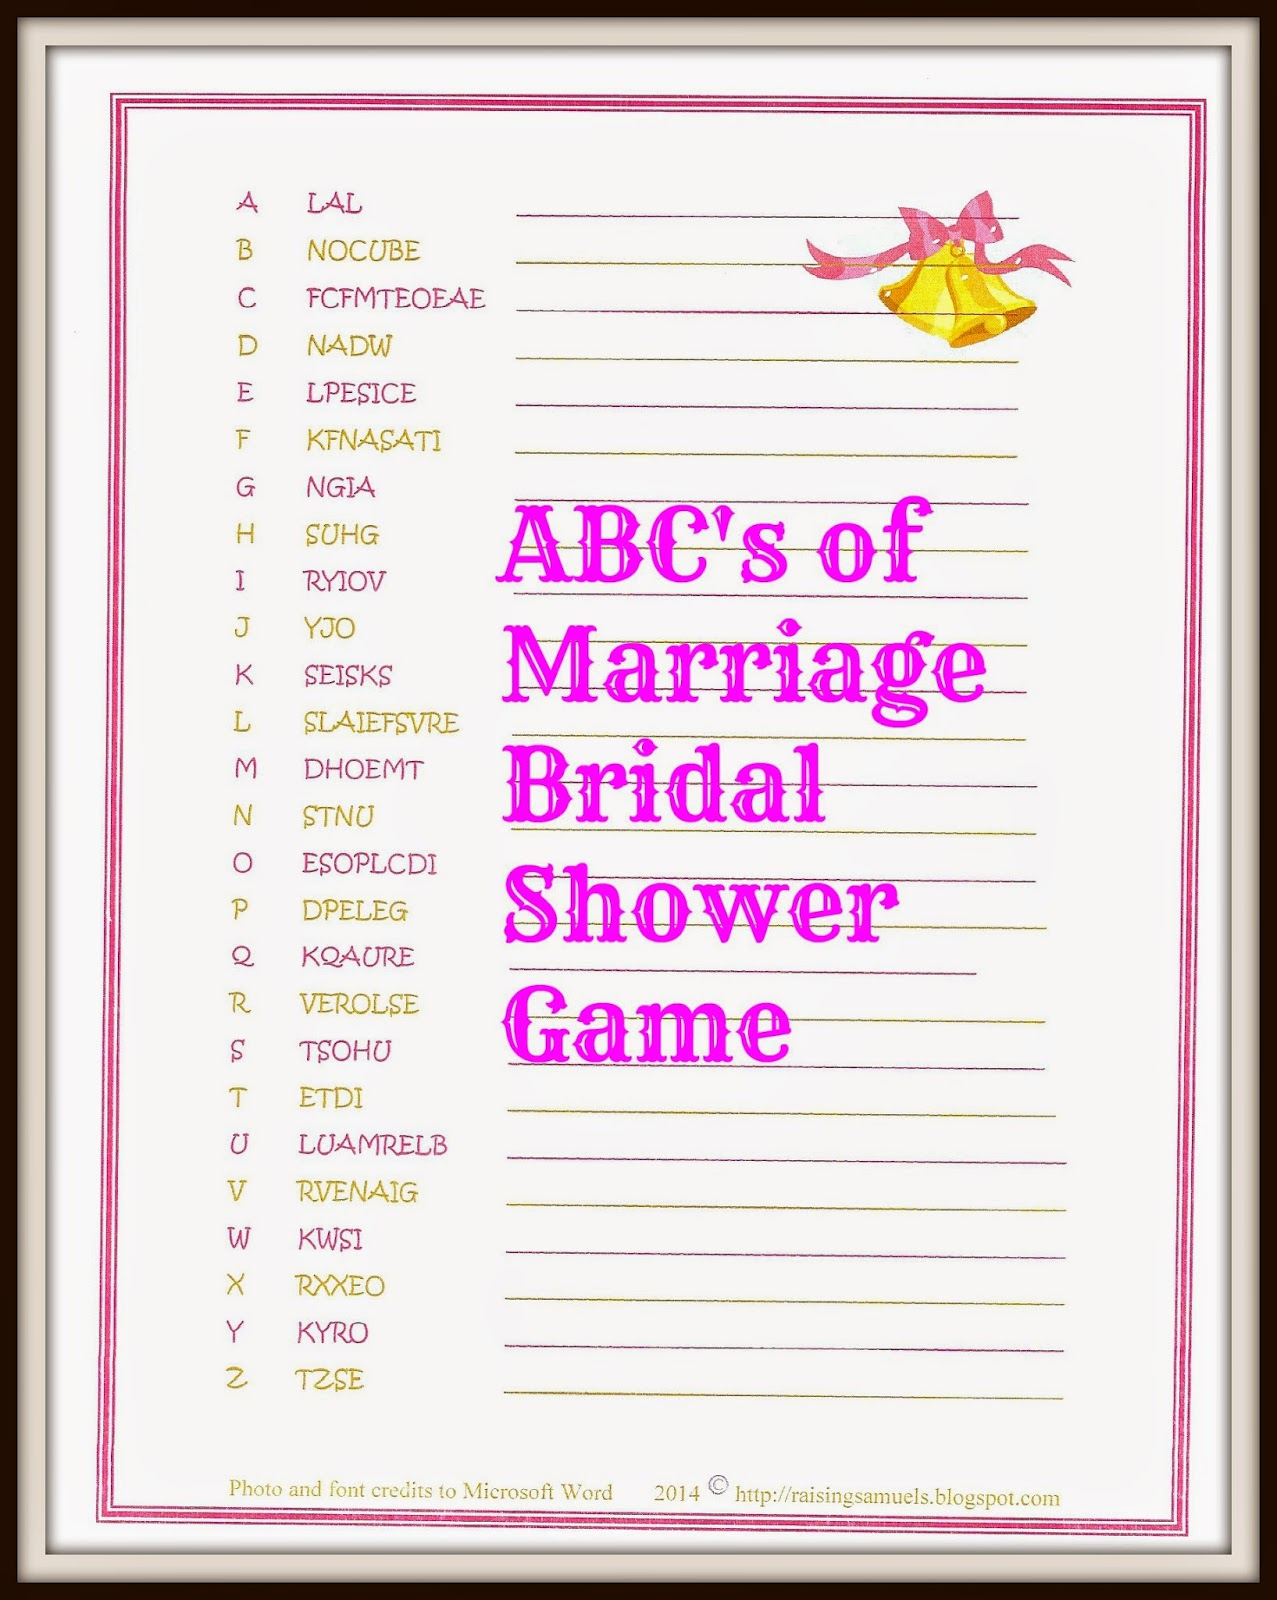 Raising Samuels Life Free ABCs of Marriage Bridal Shower Game